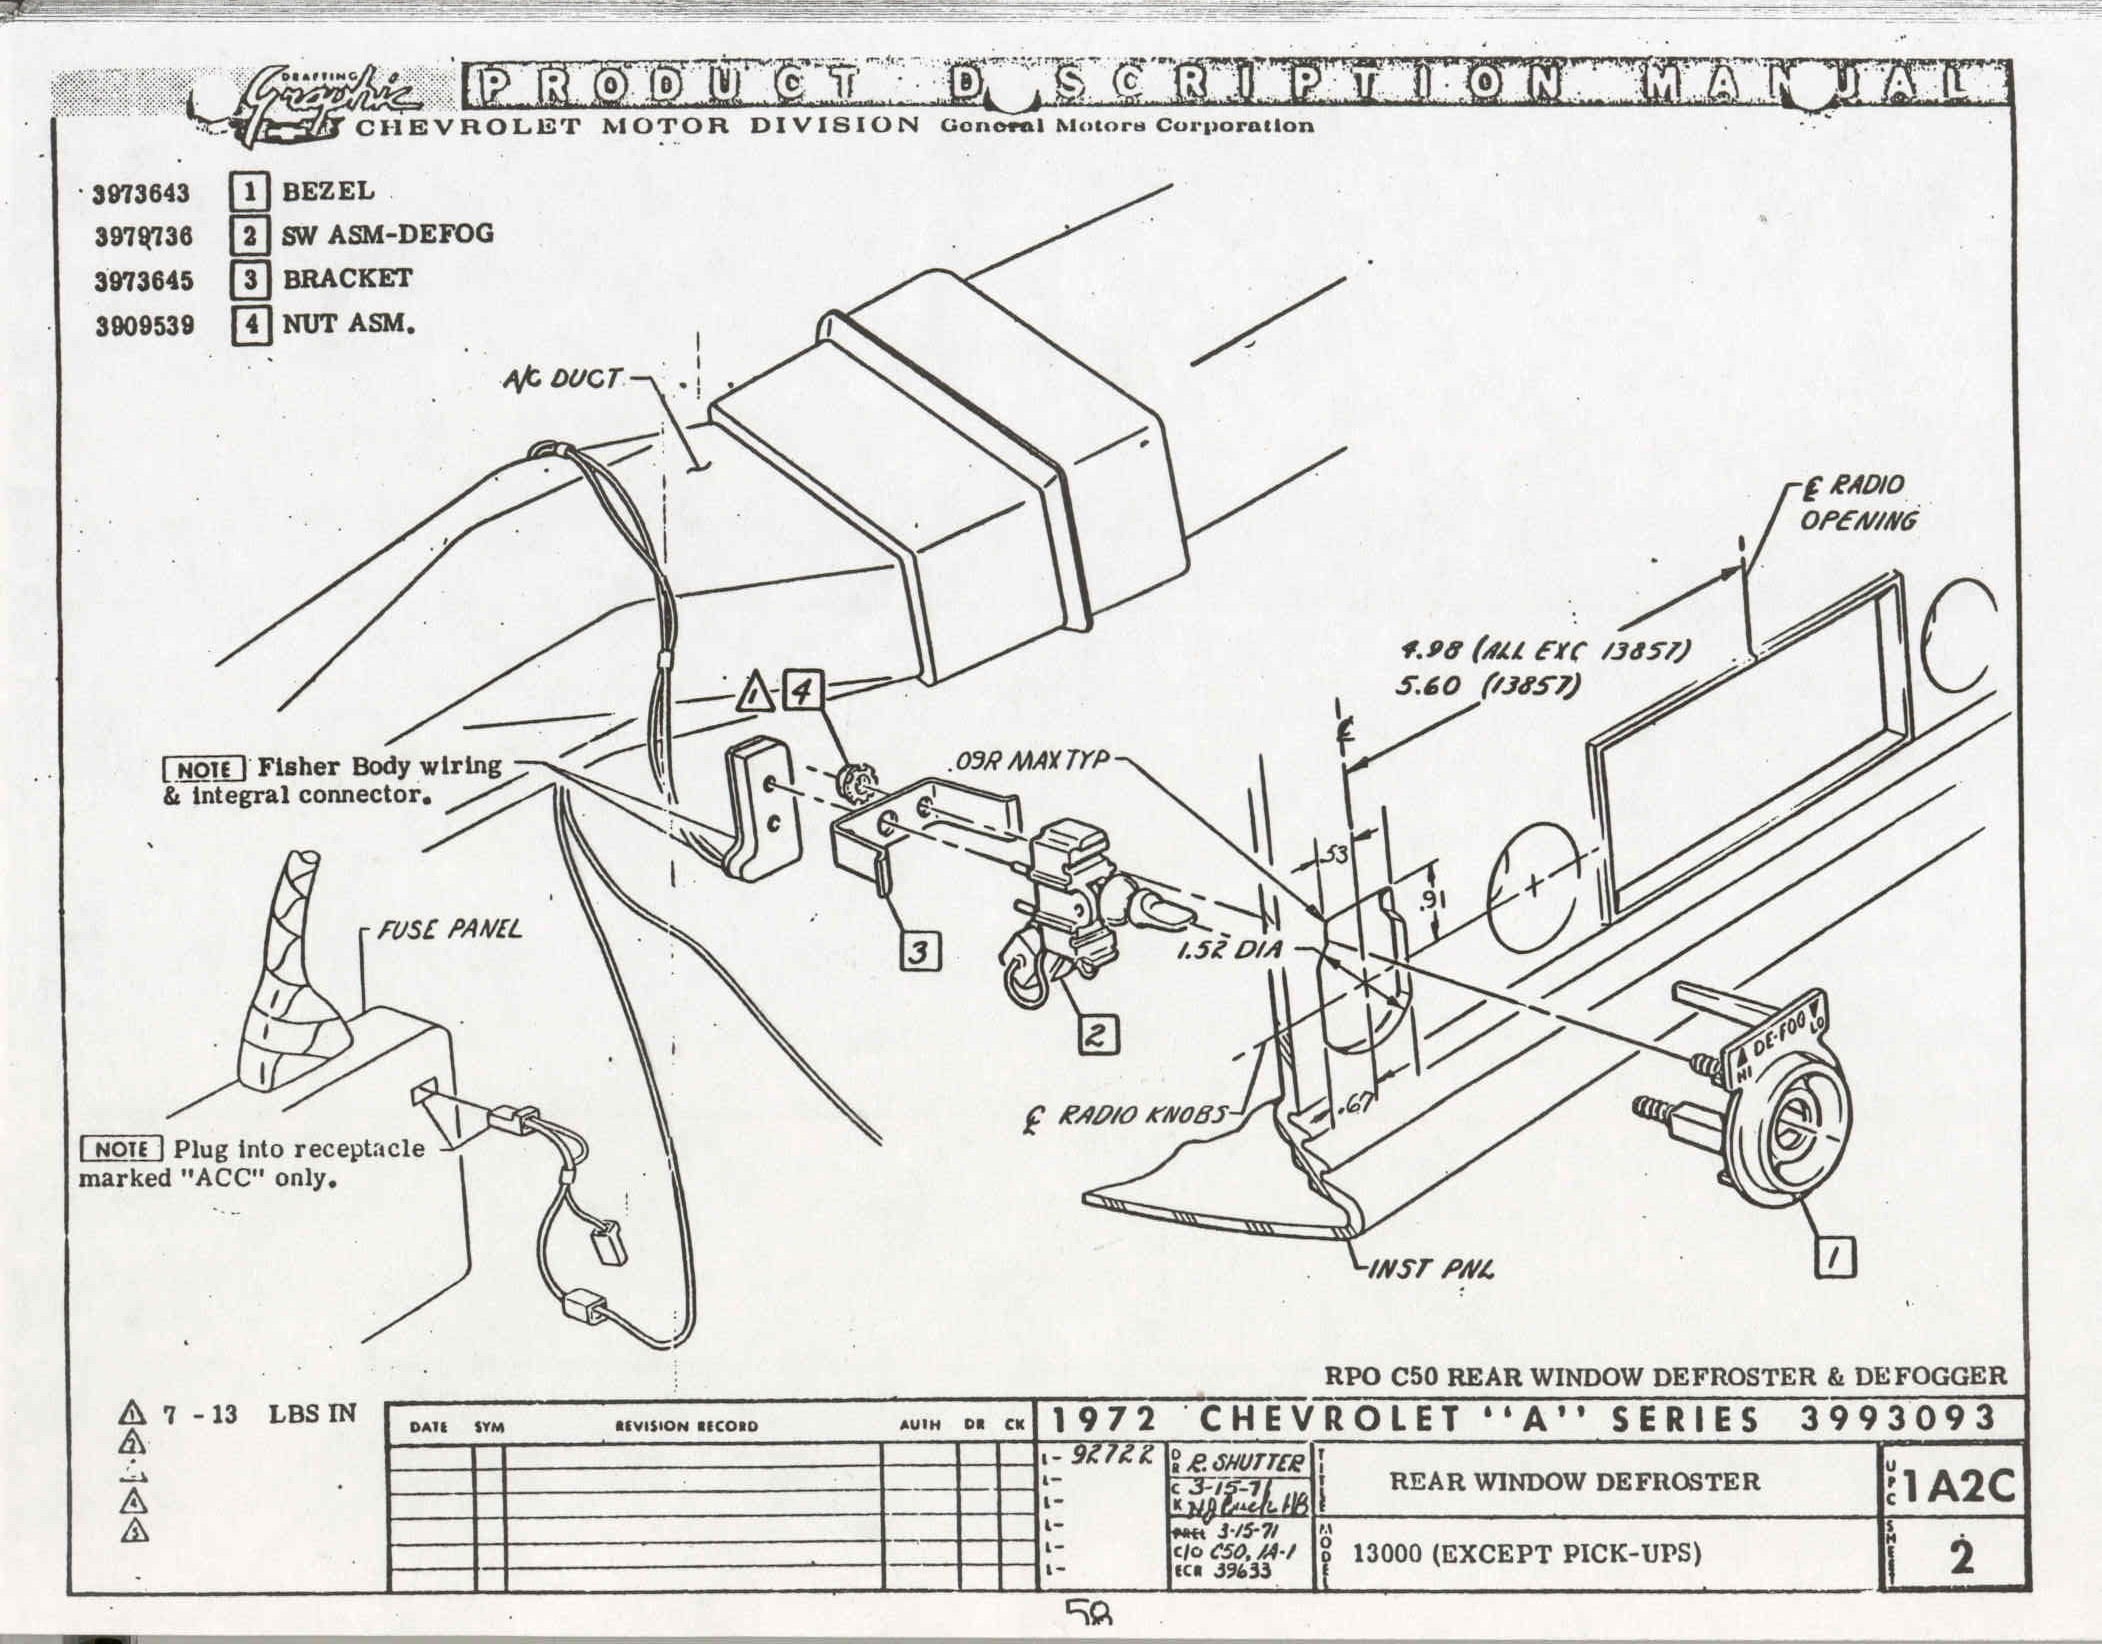 1970 Chrysler 300 Wiring Diagram | Wiring Diagram on 71 cuda rear suspension, 68 charger wiring diagram, 61 impala wiring diagram, 71 cuda wiper motor, 70 cuda wiring diagram, 1967 pontiac gto wiring diagram, 70 charger wiring diagram, 67 camaro wiring diagram,